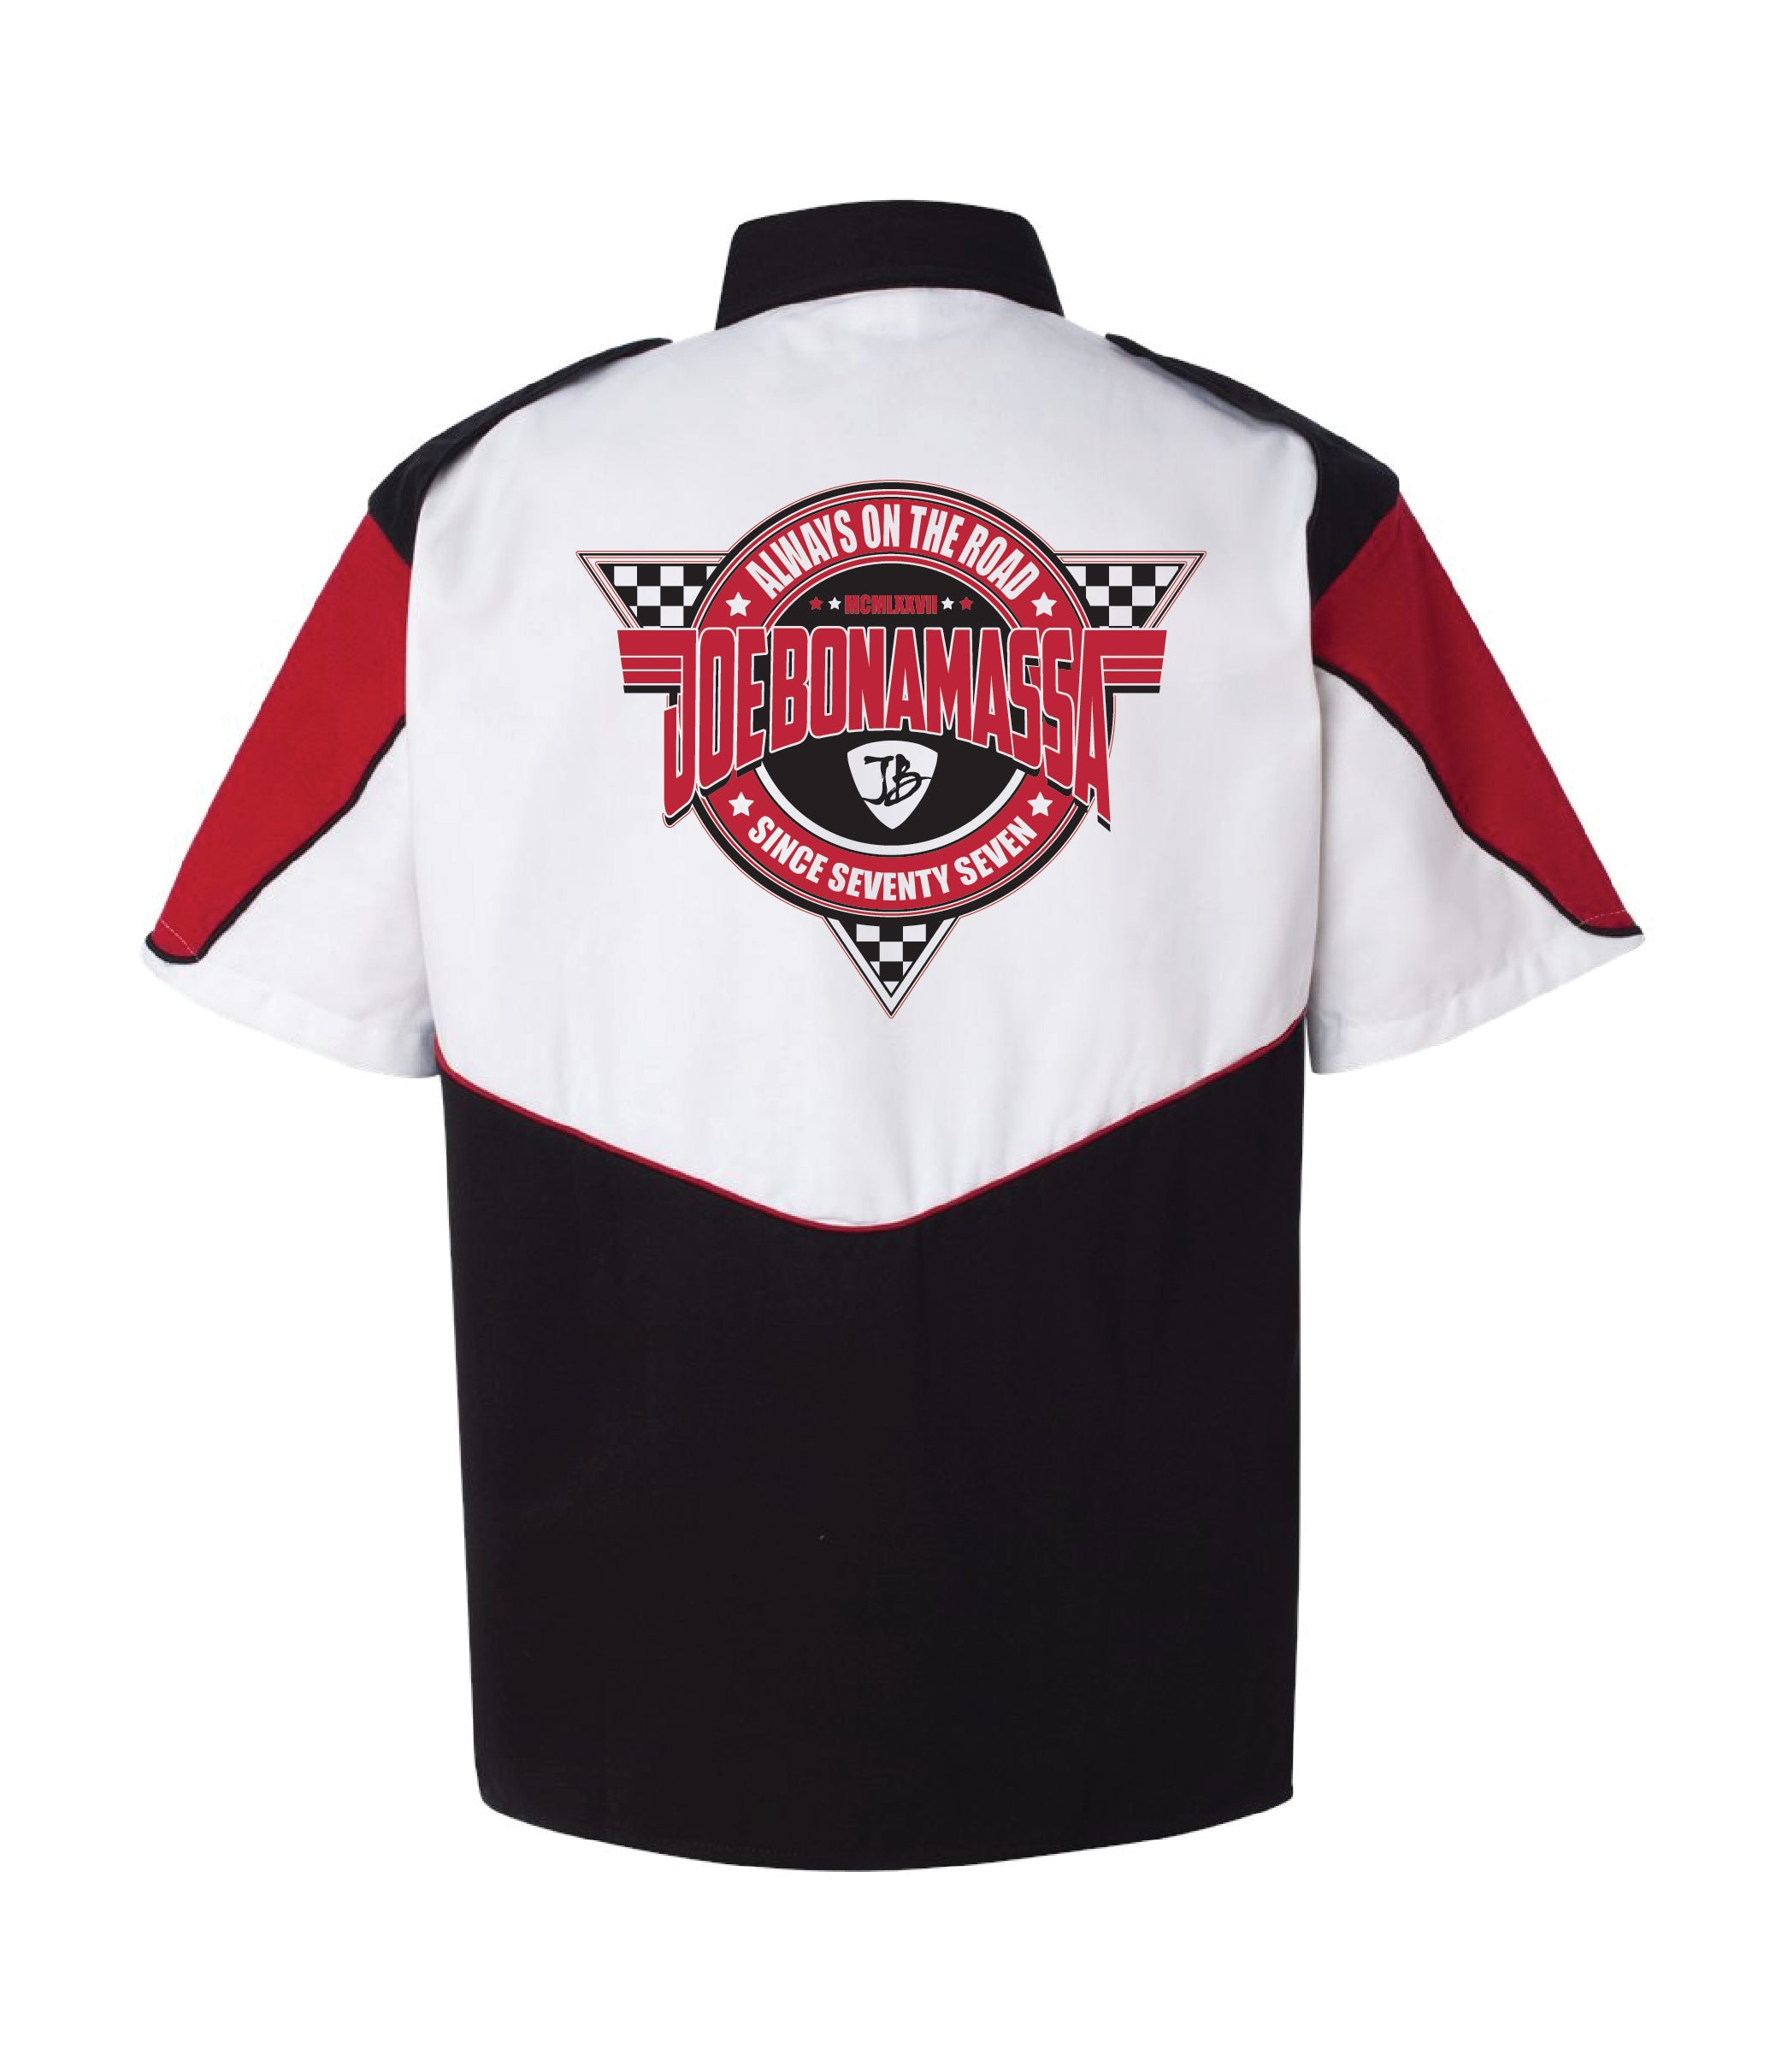 '67 Bona-Wheels & Bona-Fide Racing Shirt (Men) - Package